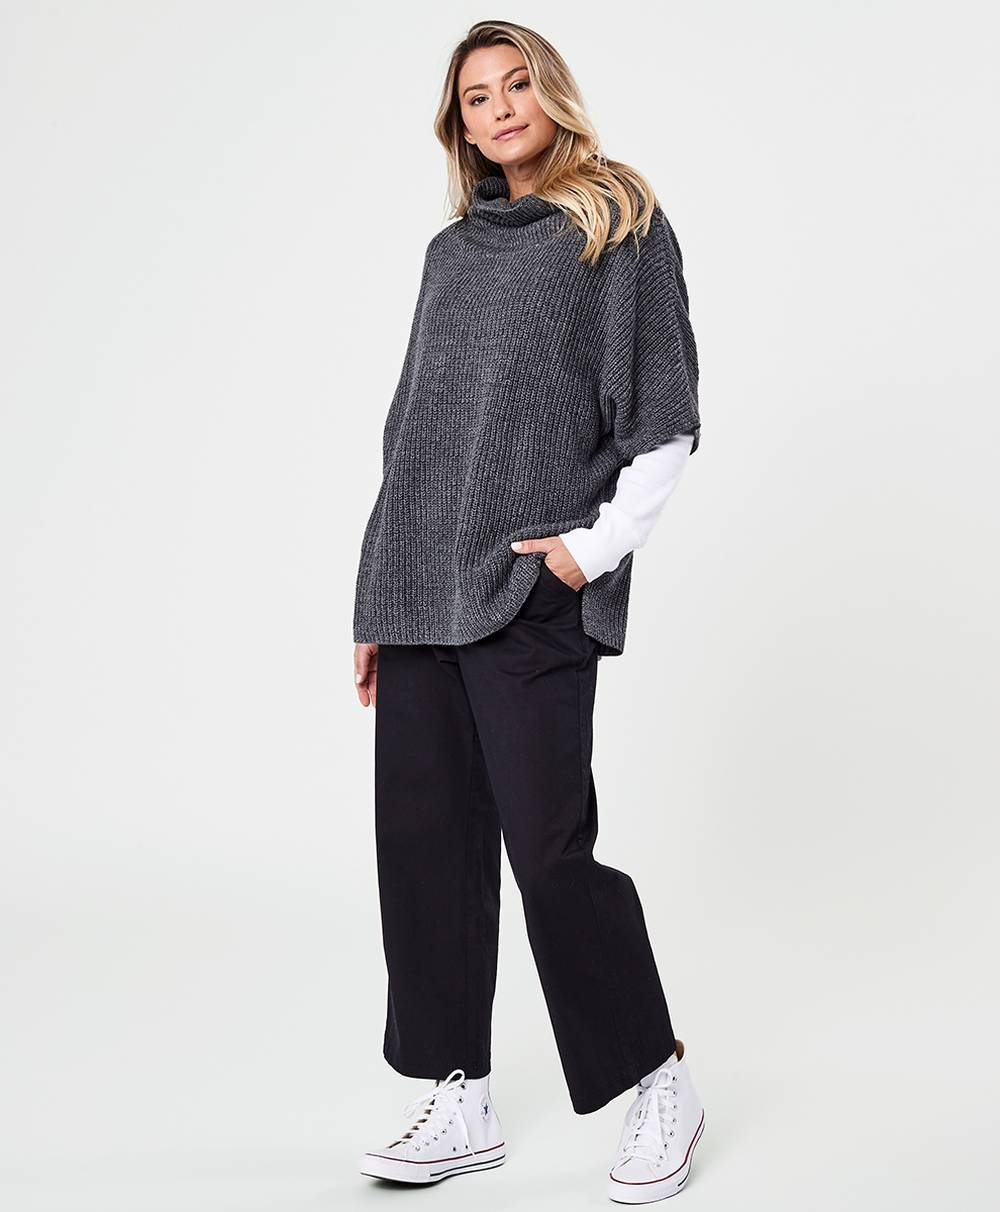 pact sustainable affordable knitwear brand